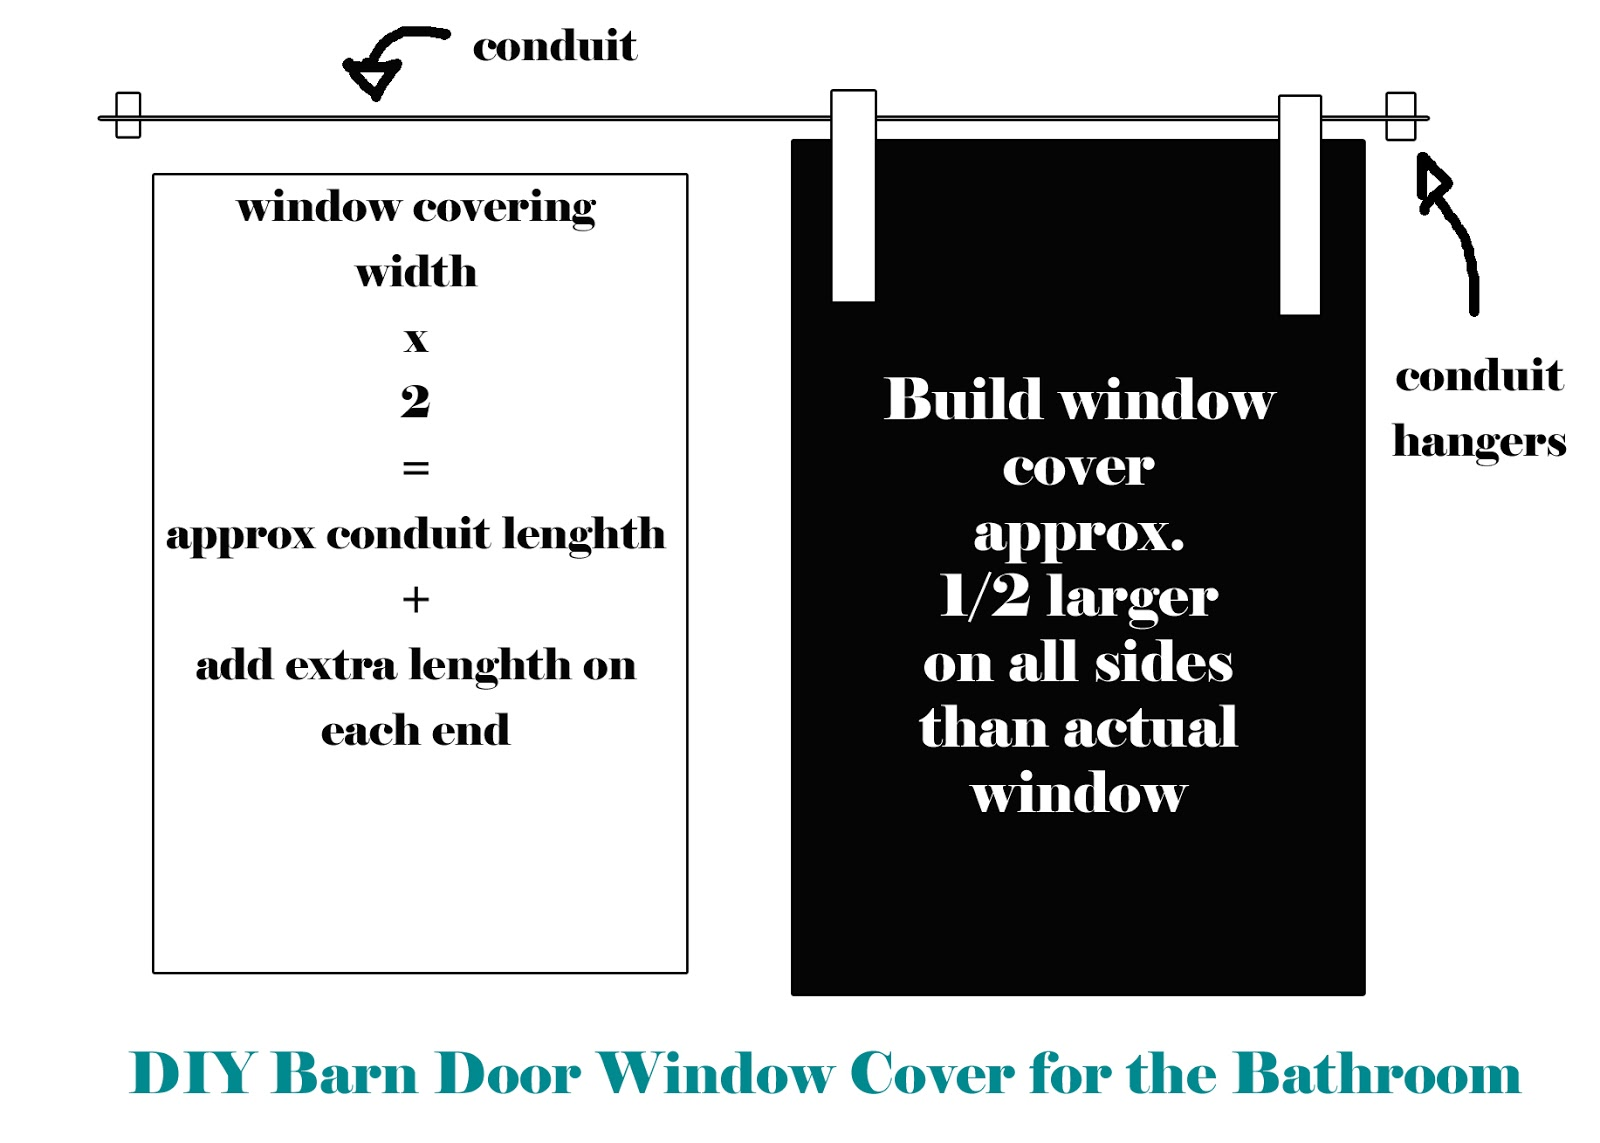 DIY Barn Door Window Cover for the Bathroom